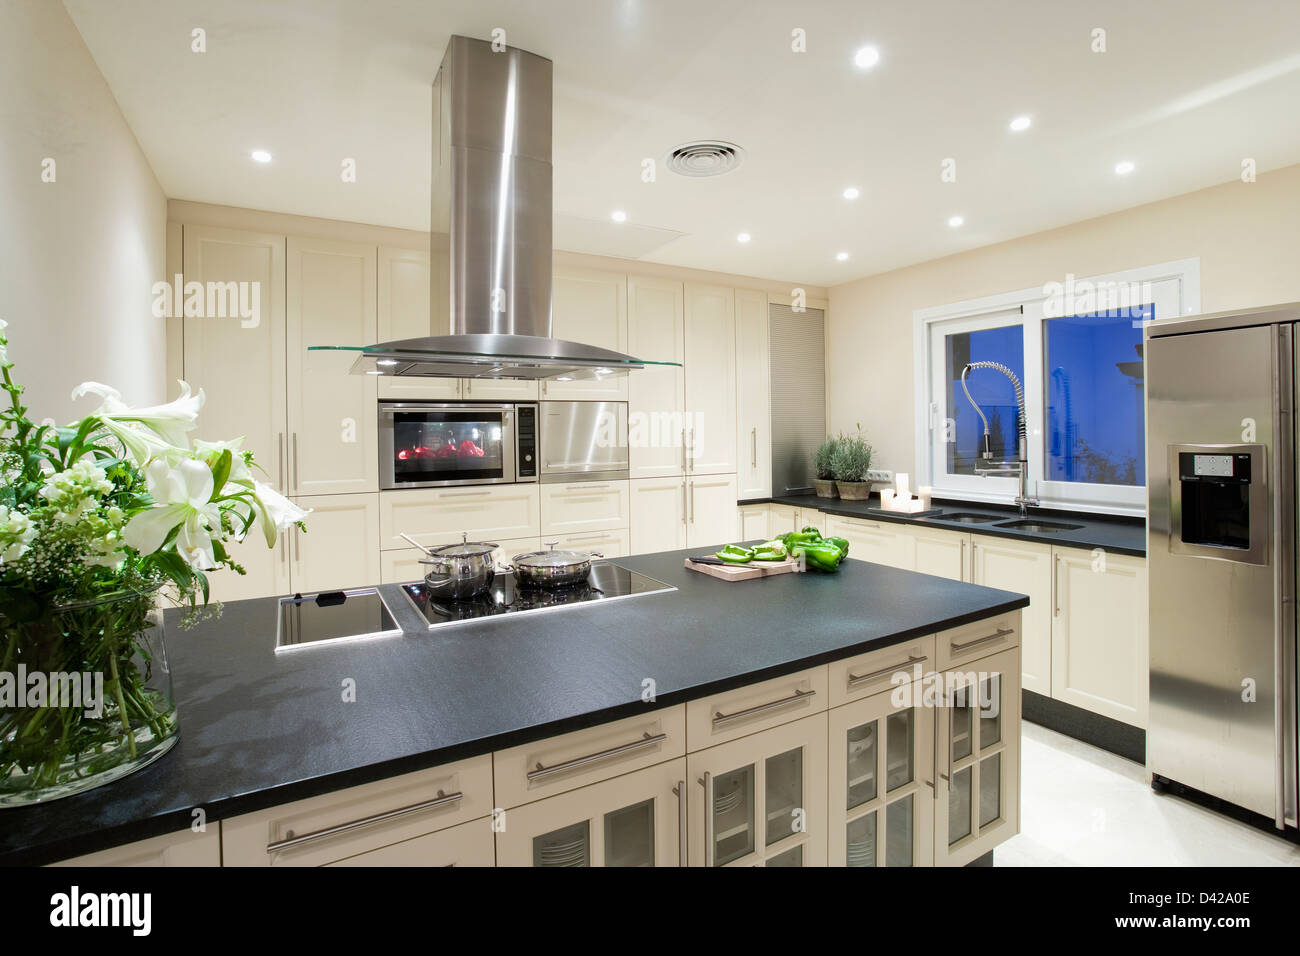 Chrome Extractor Above Hob In Island Unit With Black Granite Worktop Stock Photo Royalty Free